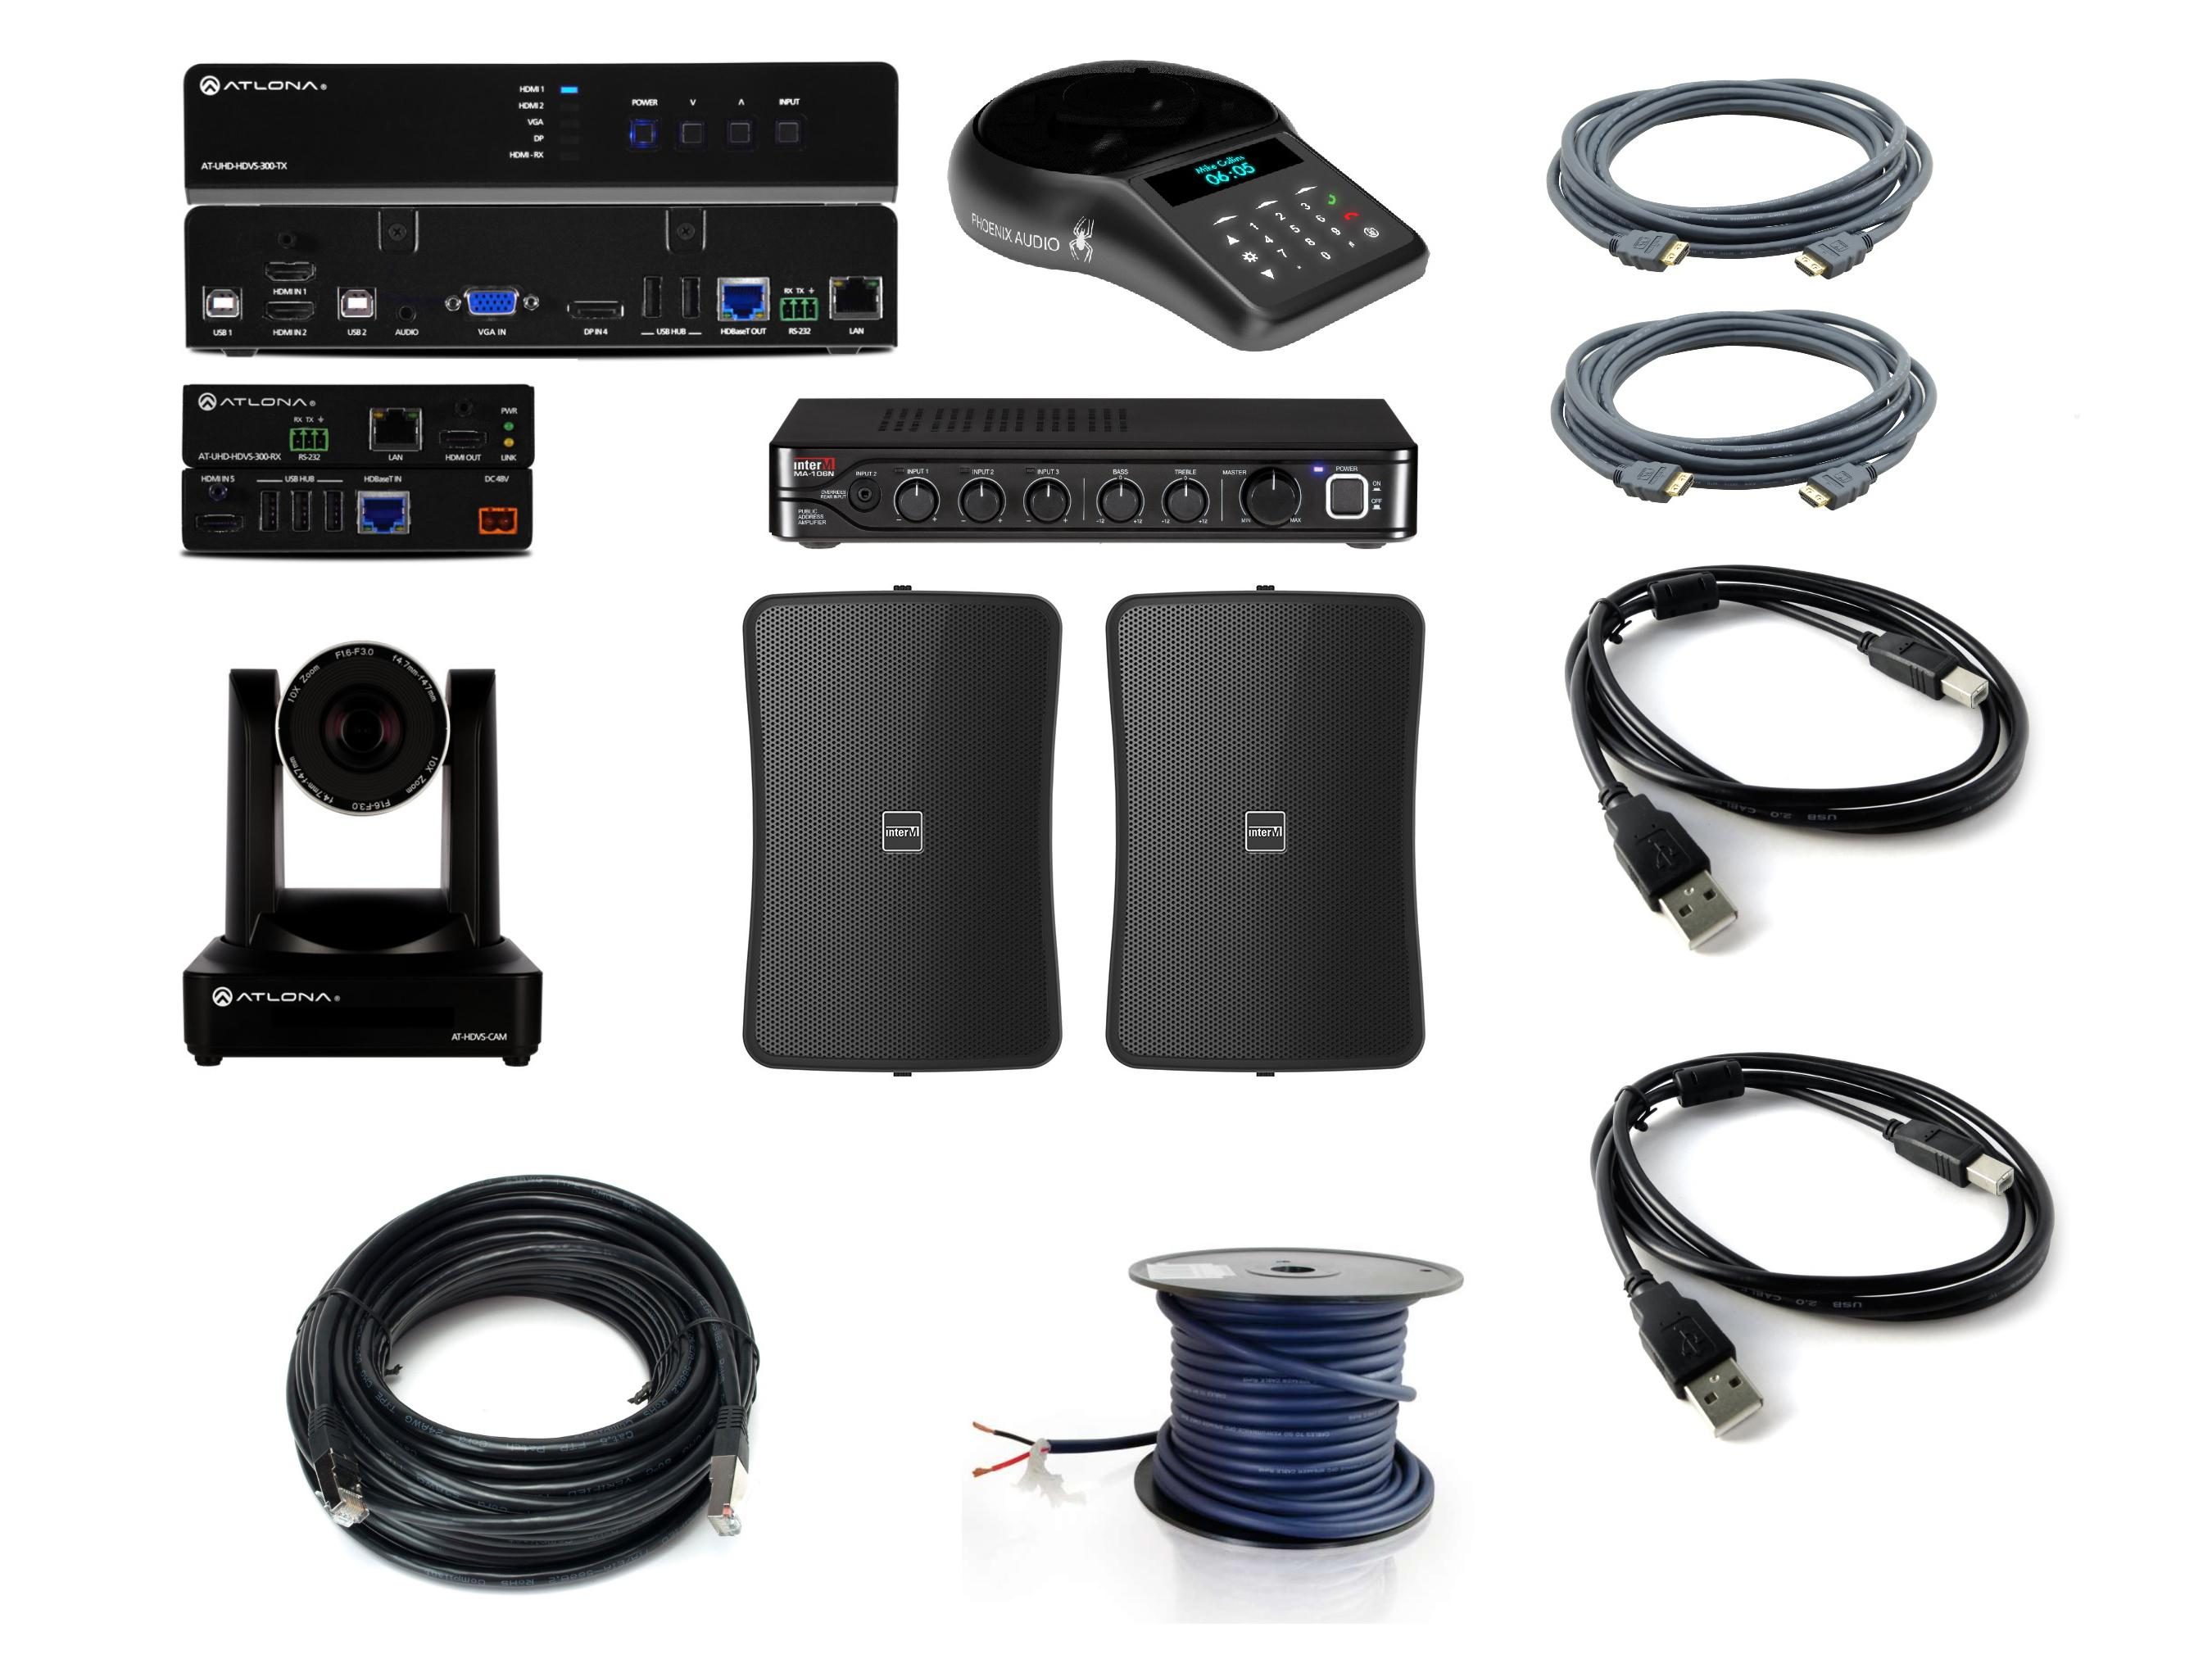 4K All-in-One All-in-One 4K Video Conference Room Solution (Speaker/Switcher/Mic/Cables) by BZB